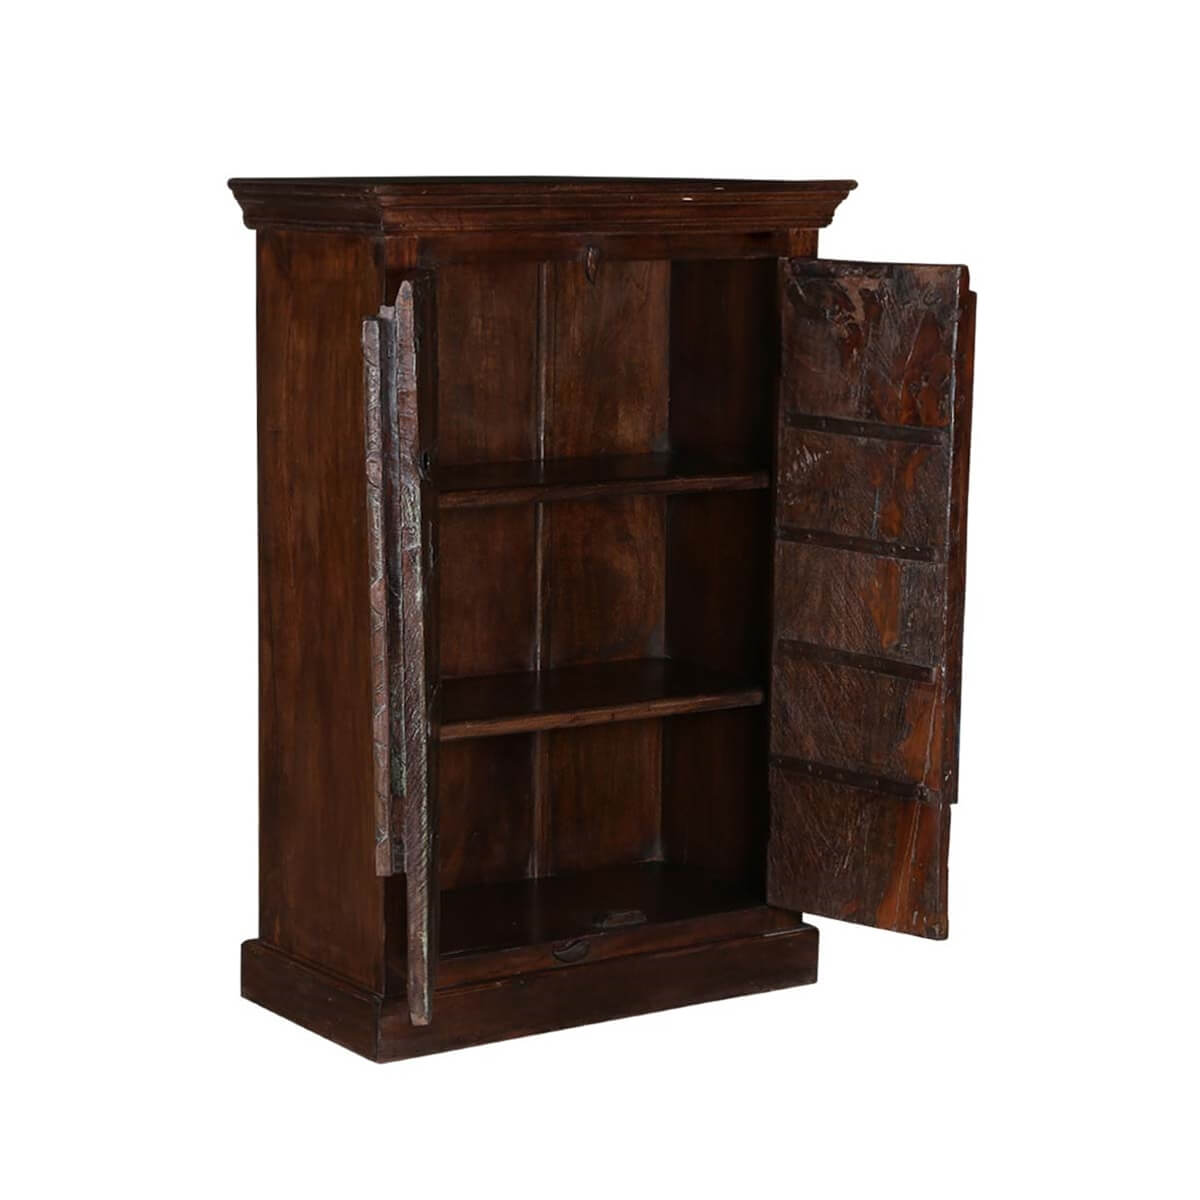 willamette arched door rustic reclaimed wood accent cabinet dining room storage cabinets furniture Dining Room Hutch Cabinet